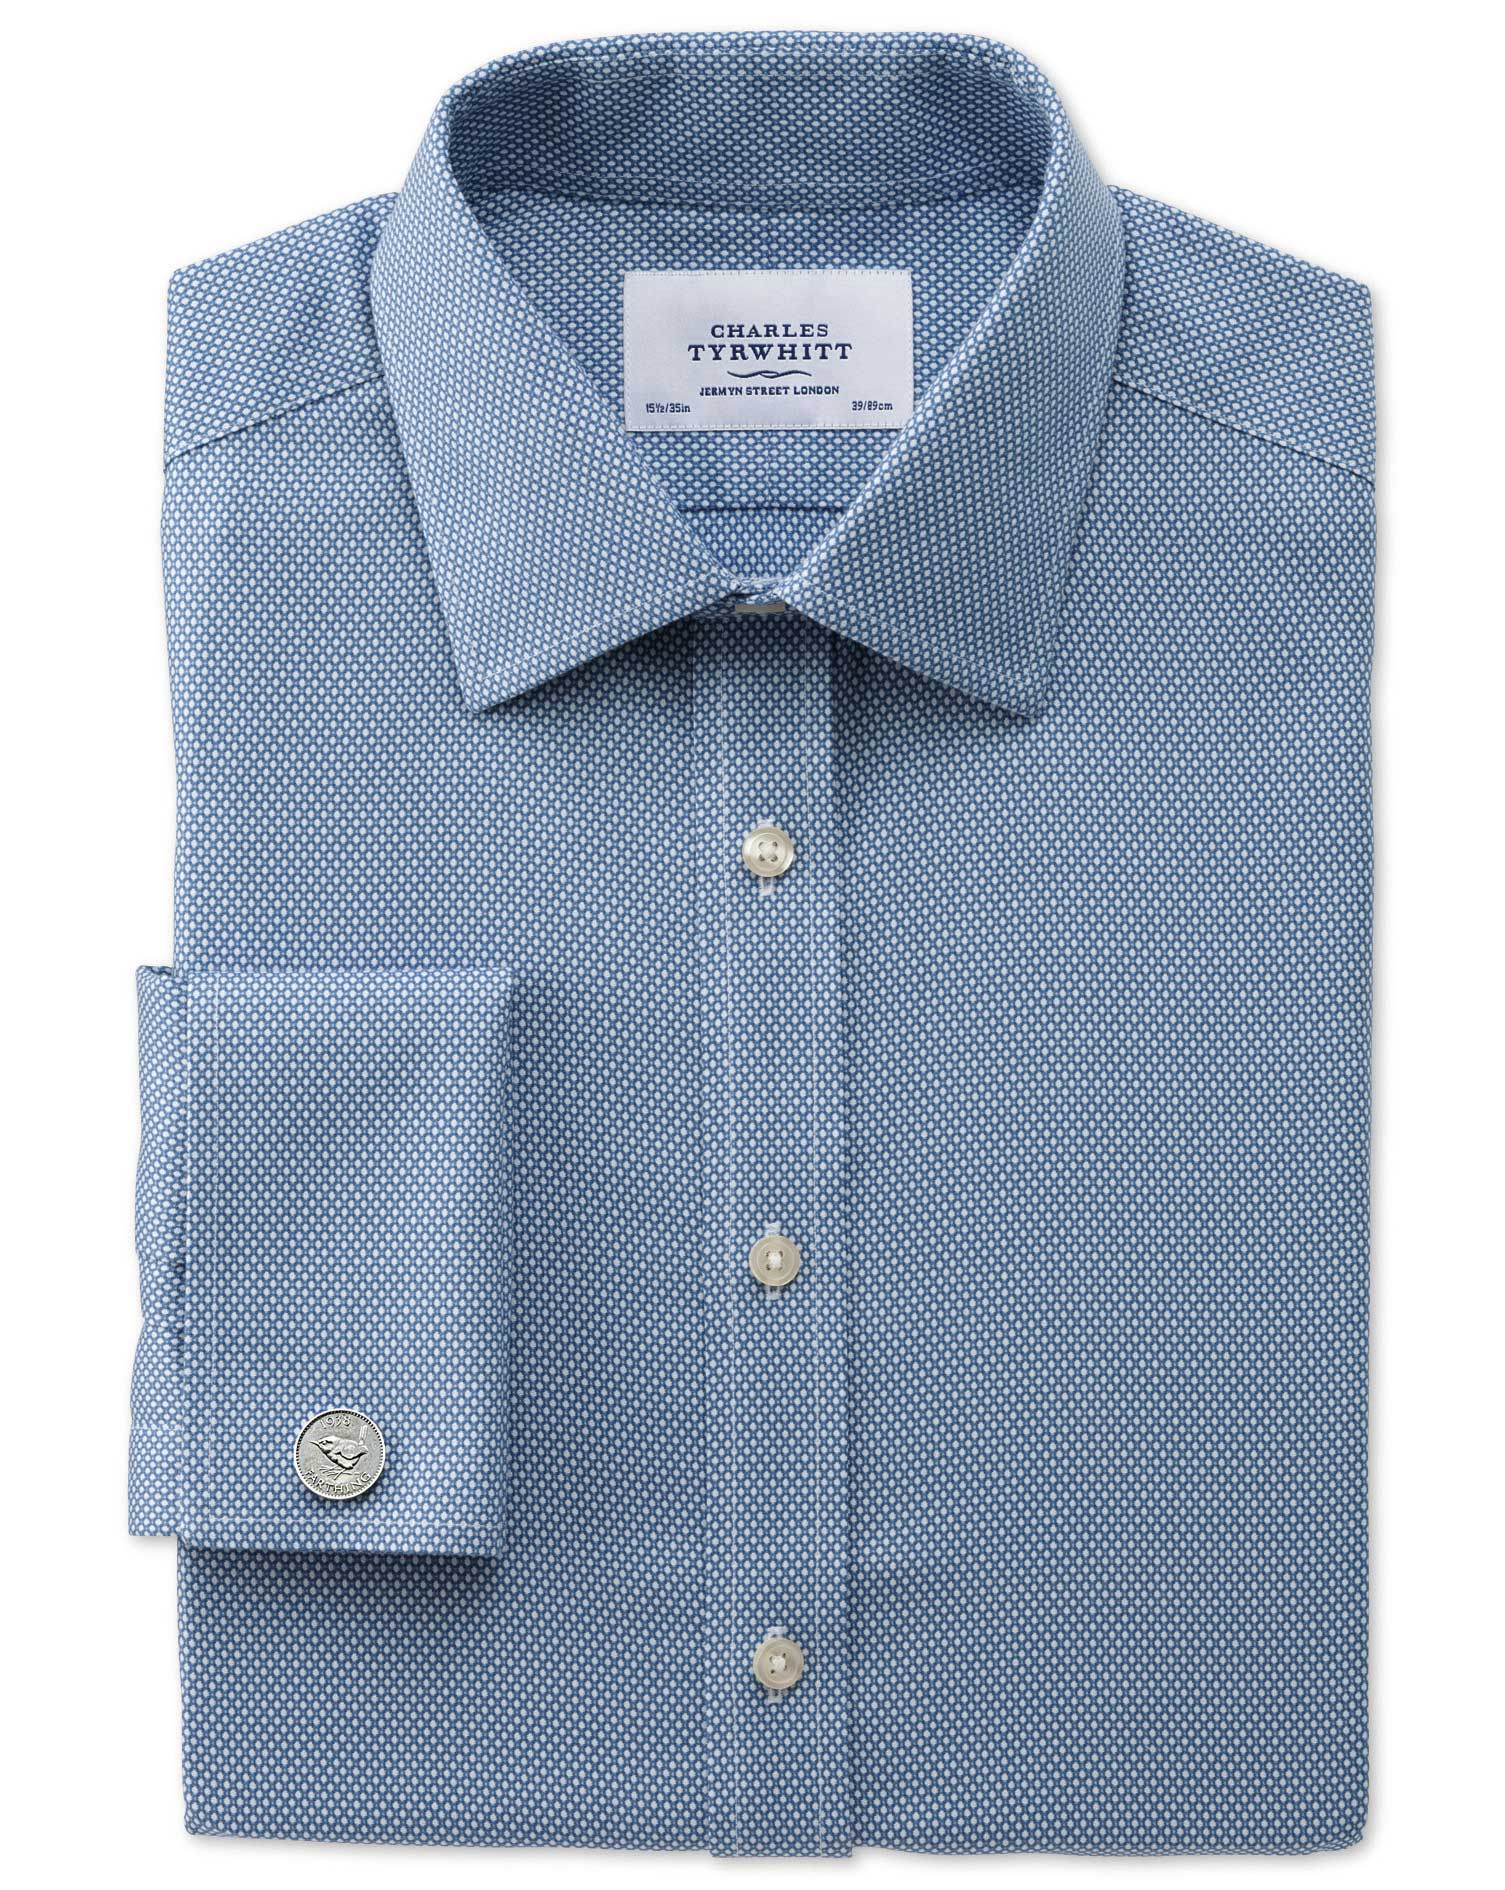 Slim Fit Non-Iron Honeycomb Mid Blue Cotton Formal Shirt Double Cuff Size 16/38 by Charles Tyrwhitt